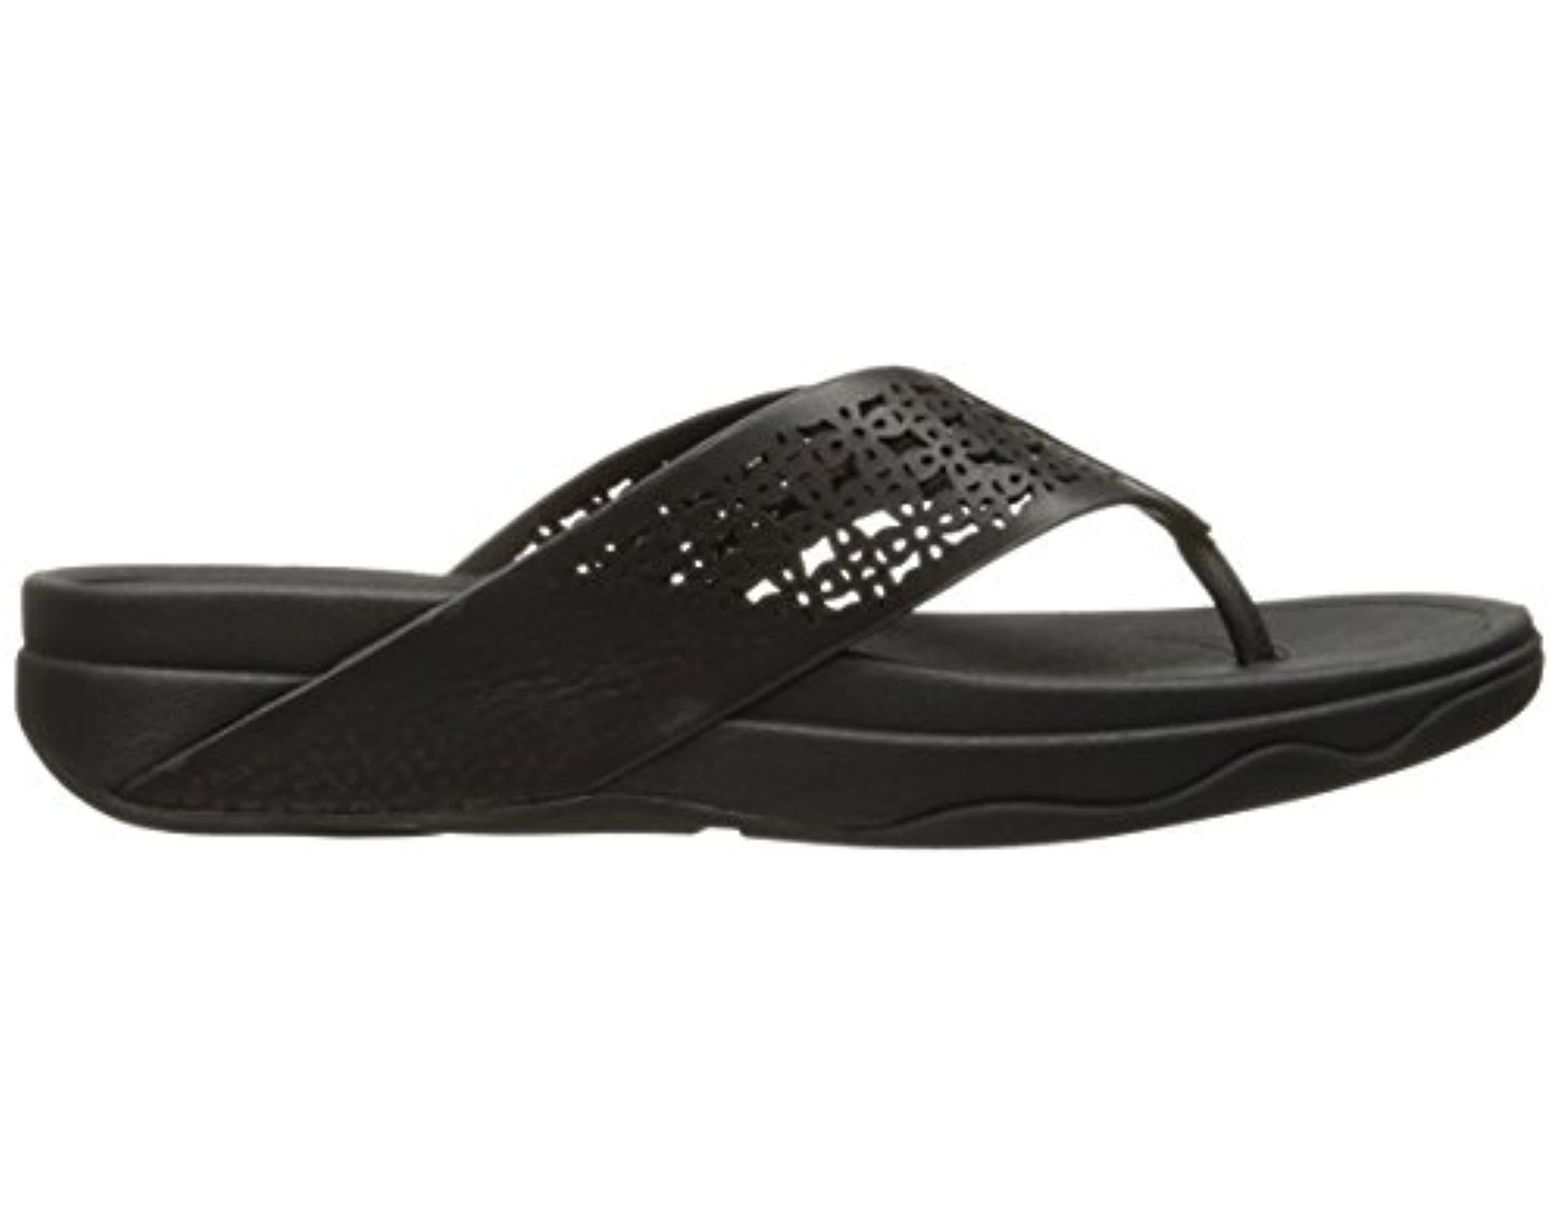 61b24c410 Lyst - Fitflop Leather Lattice Surfa Floral Flip Flops in Black - Save 5%